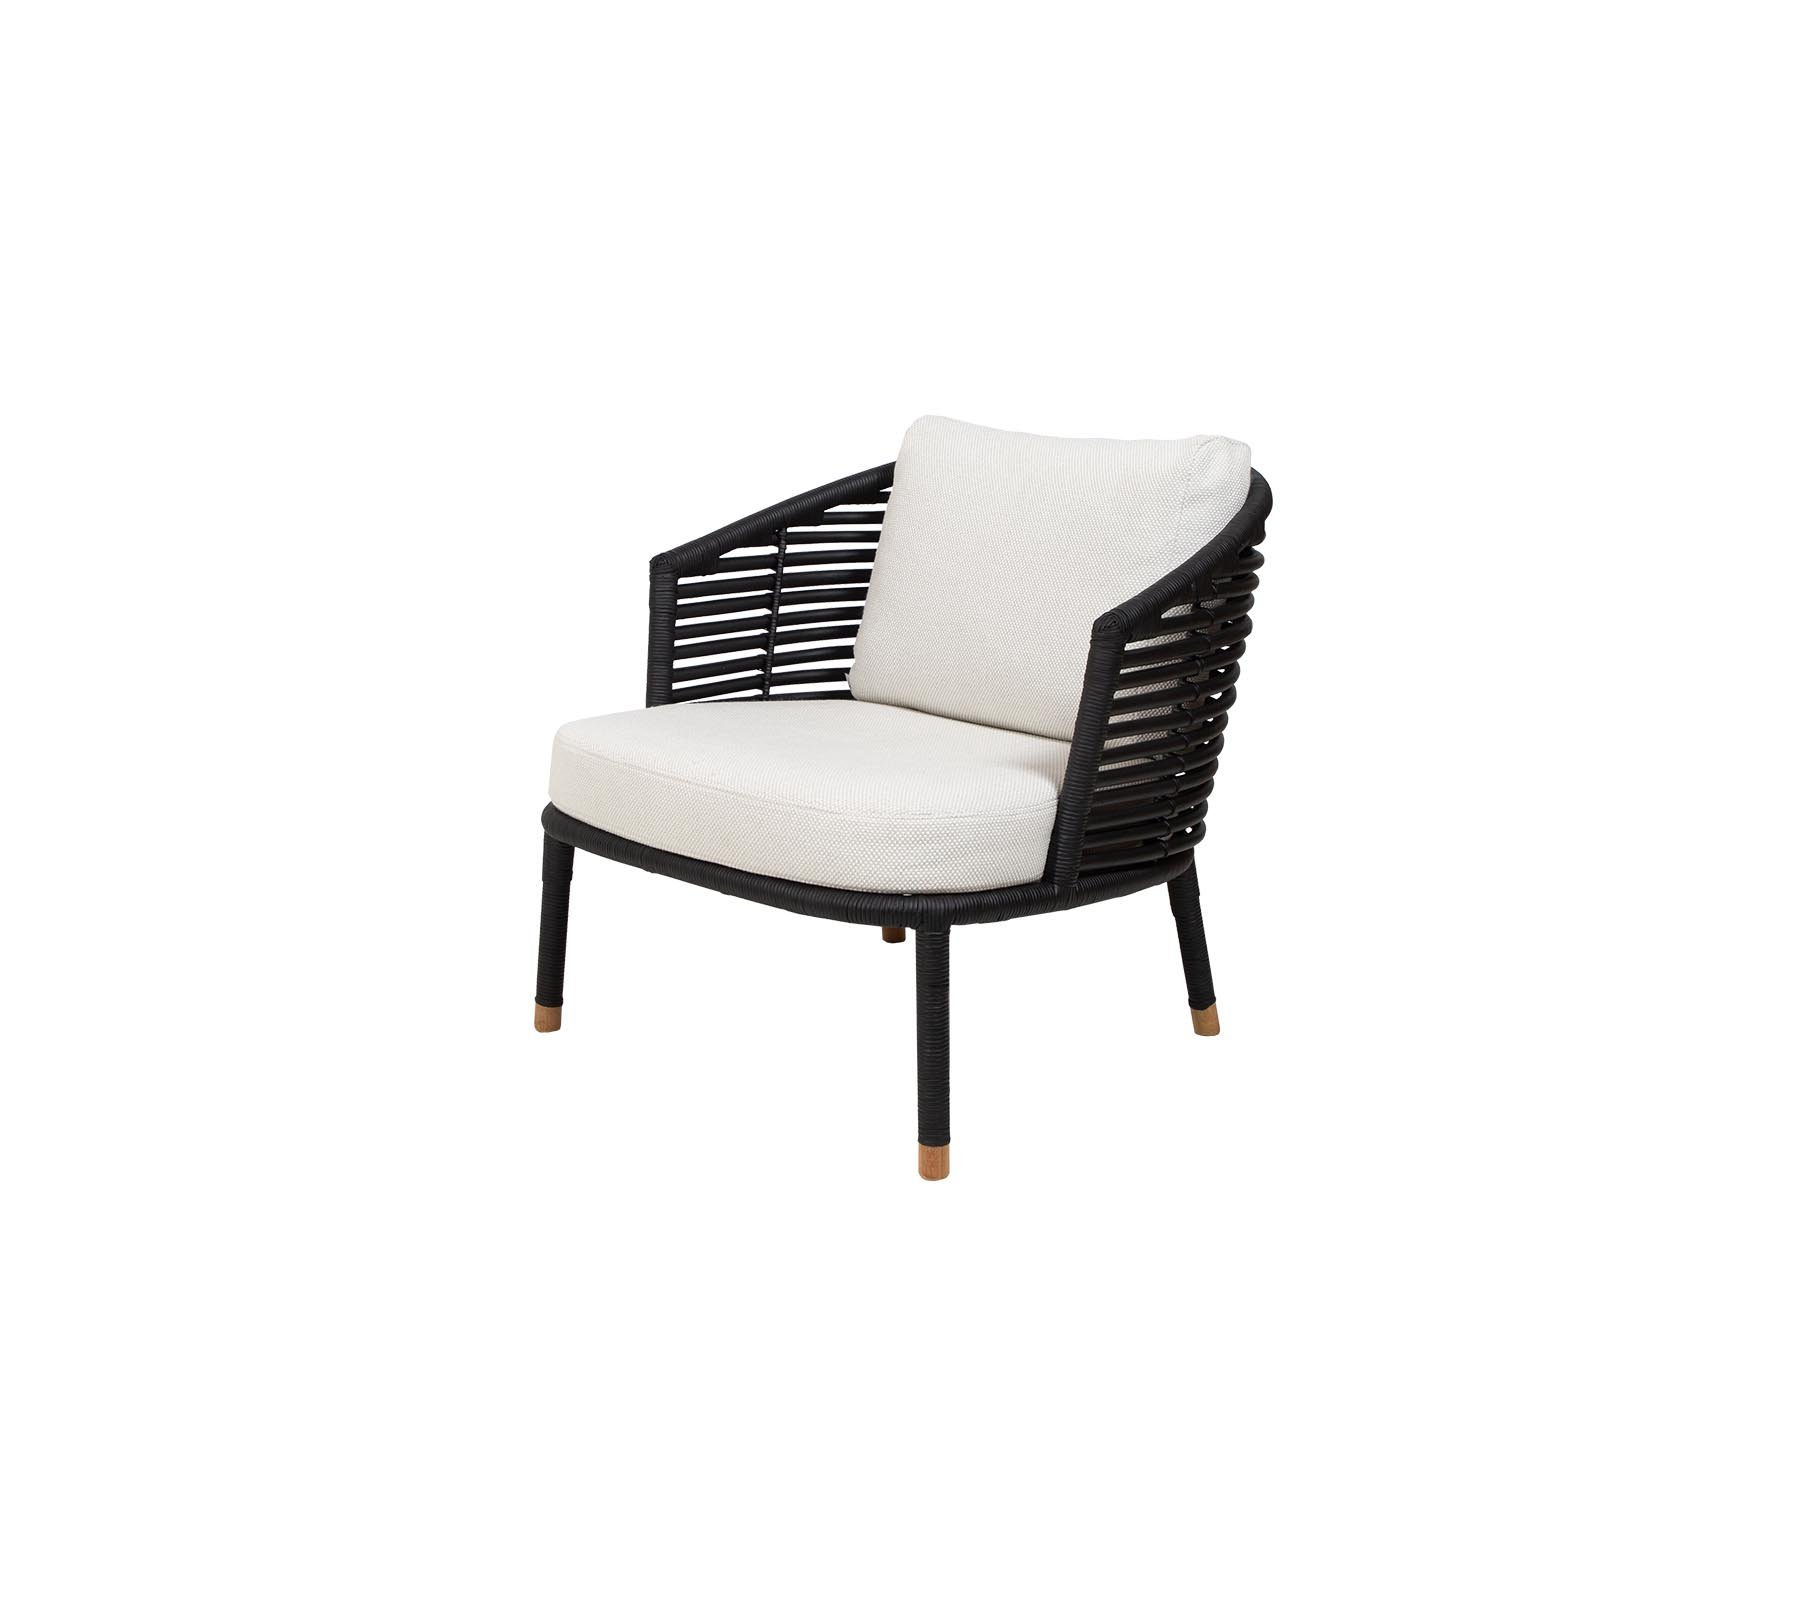 Sense Lounge Chair from Cane-line